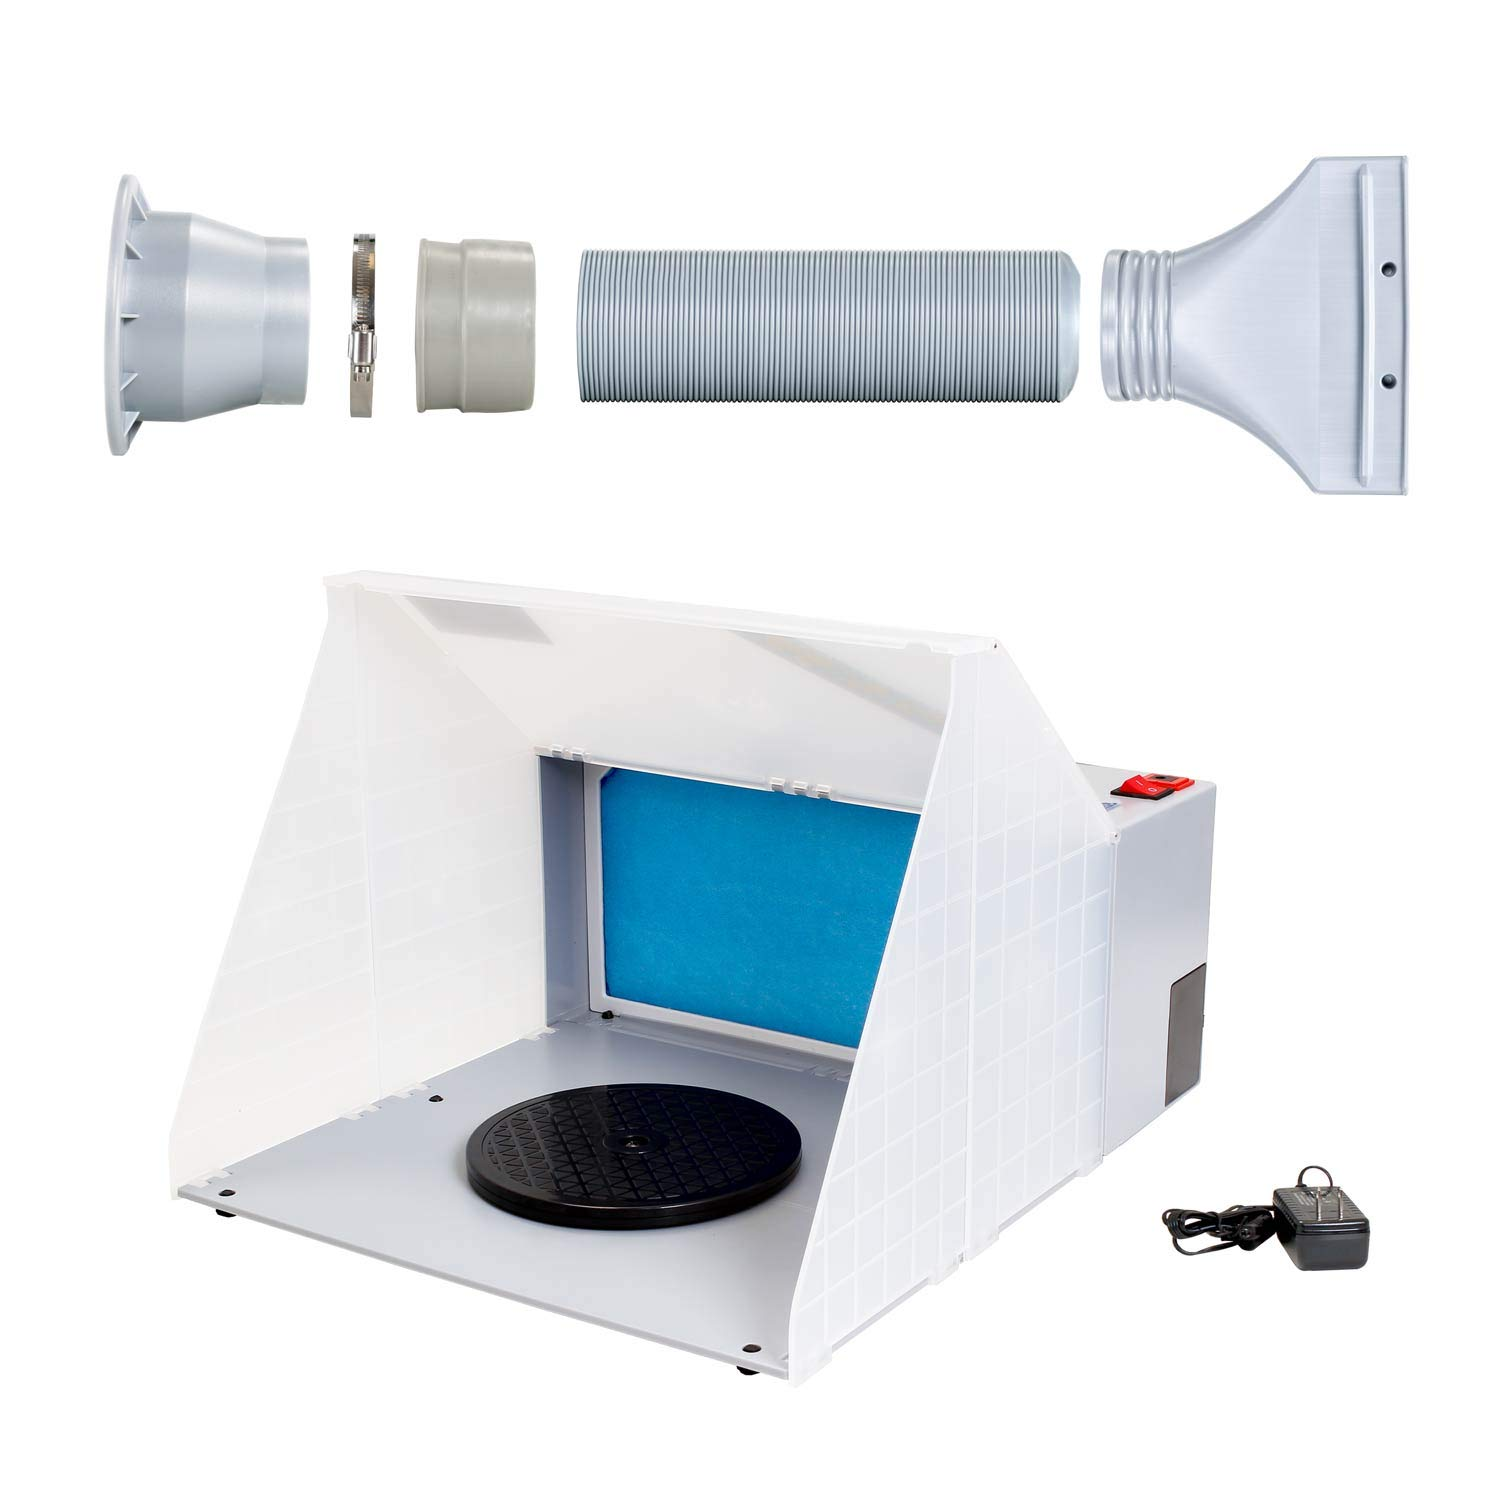 Master Airbrush Portable Hobby Airbrush Craft Spray Booth (Without Optional LED Lighting) for Painting All Art, Cake, Craft, Hobby, Nails, T-Shirts & More. Includes 5.6ft Exhaust Extension Hose